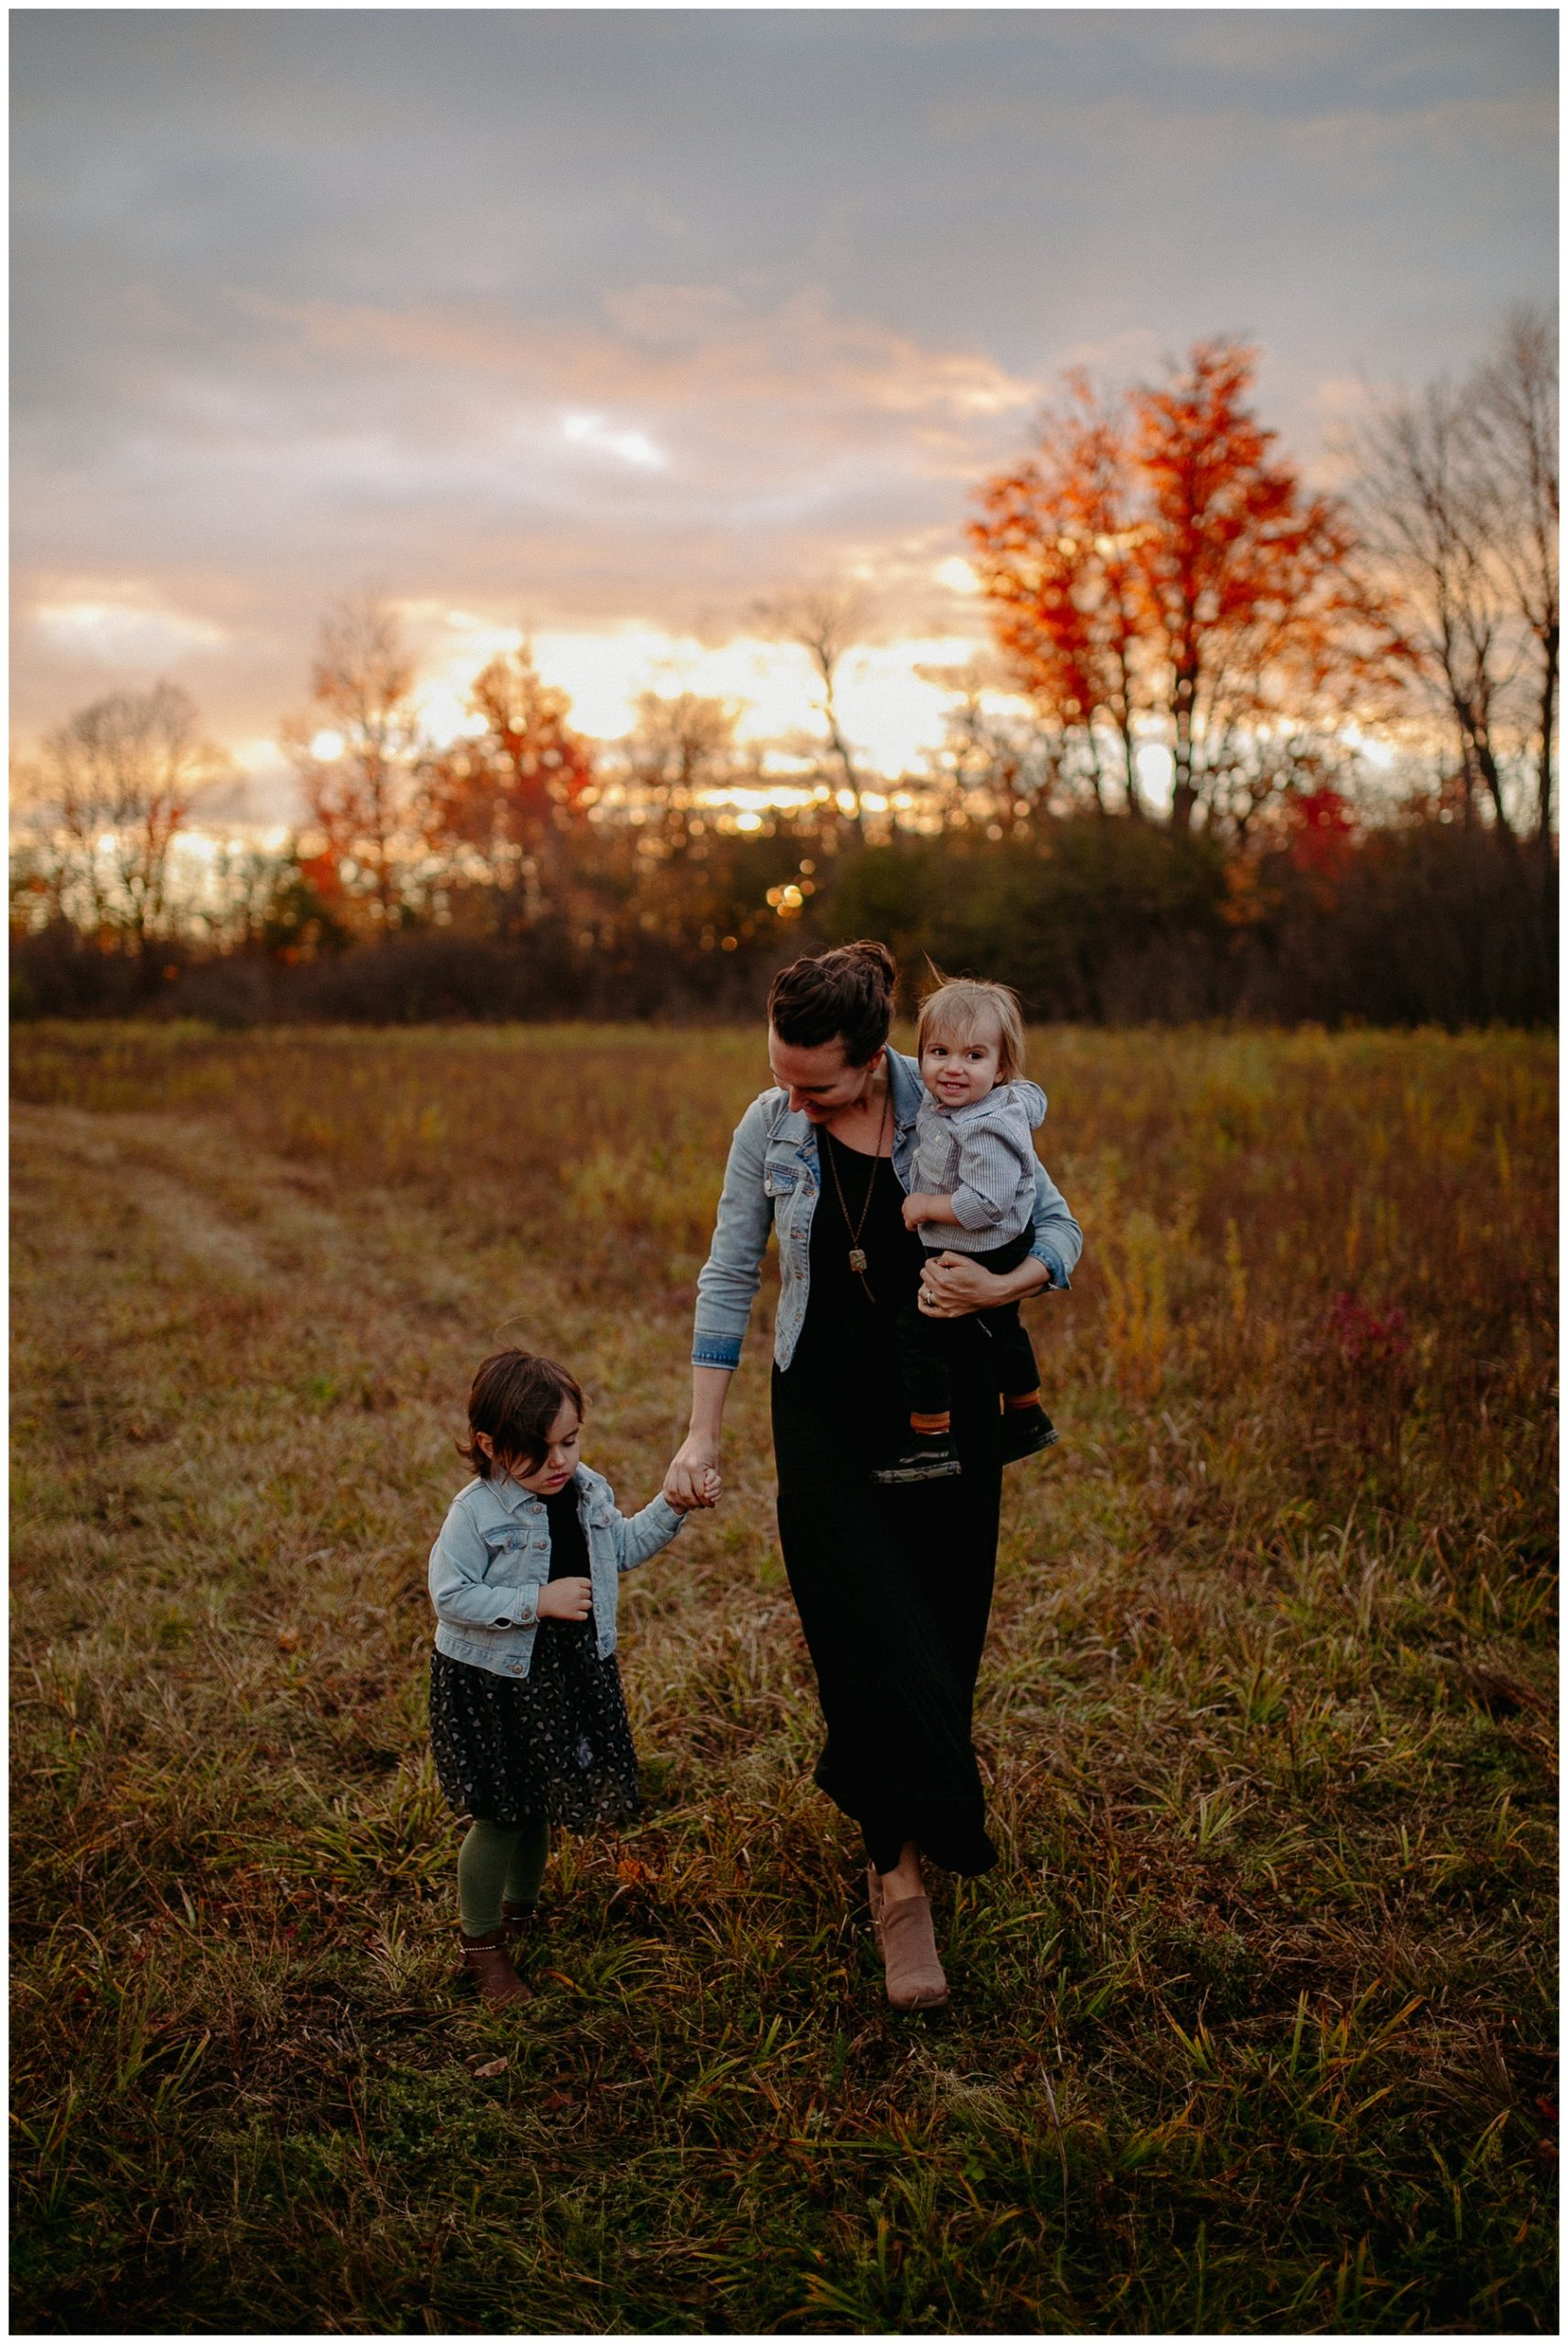 kerry ford photography - fall autumn family session perth010.jpg